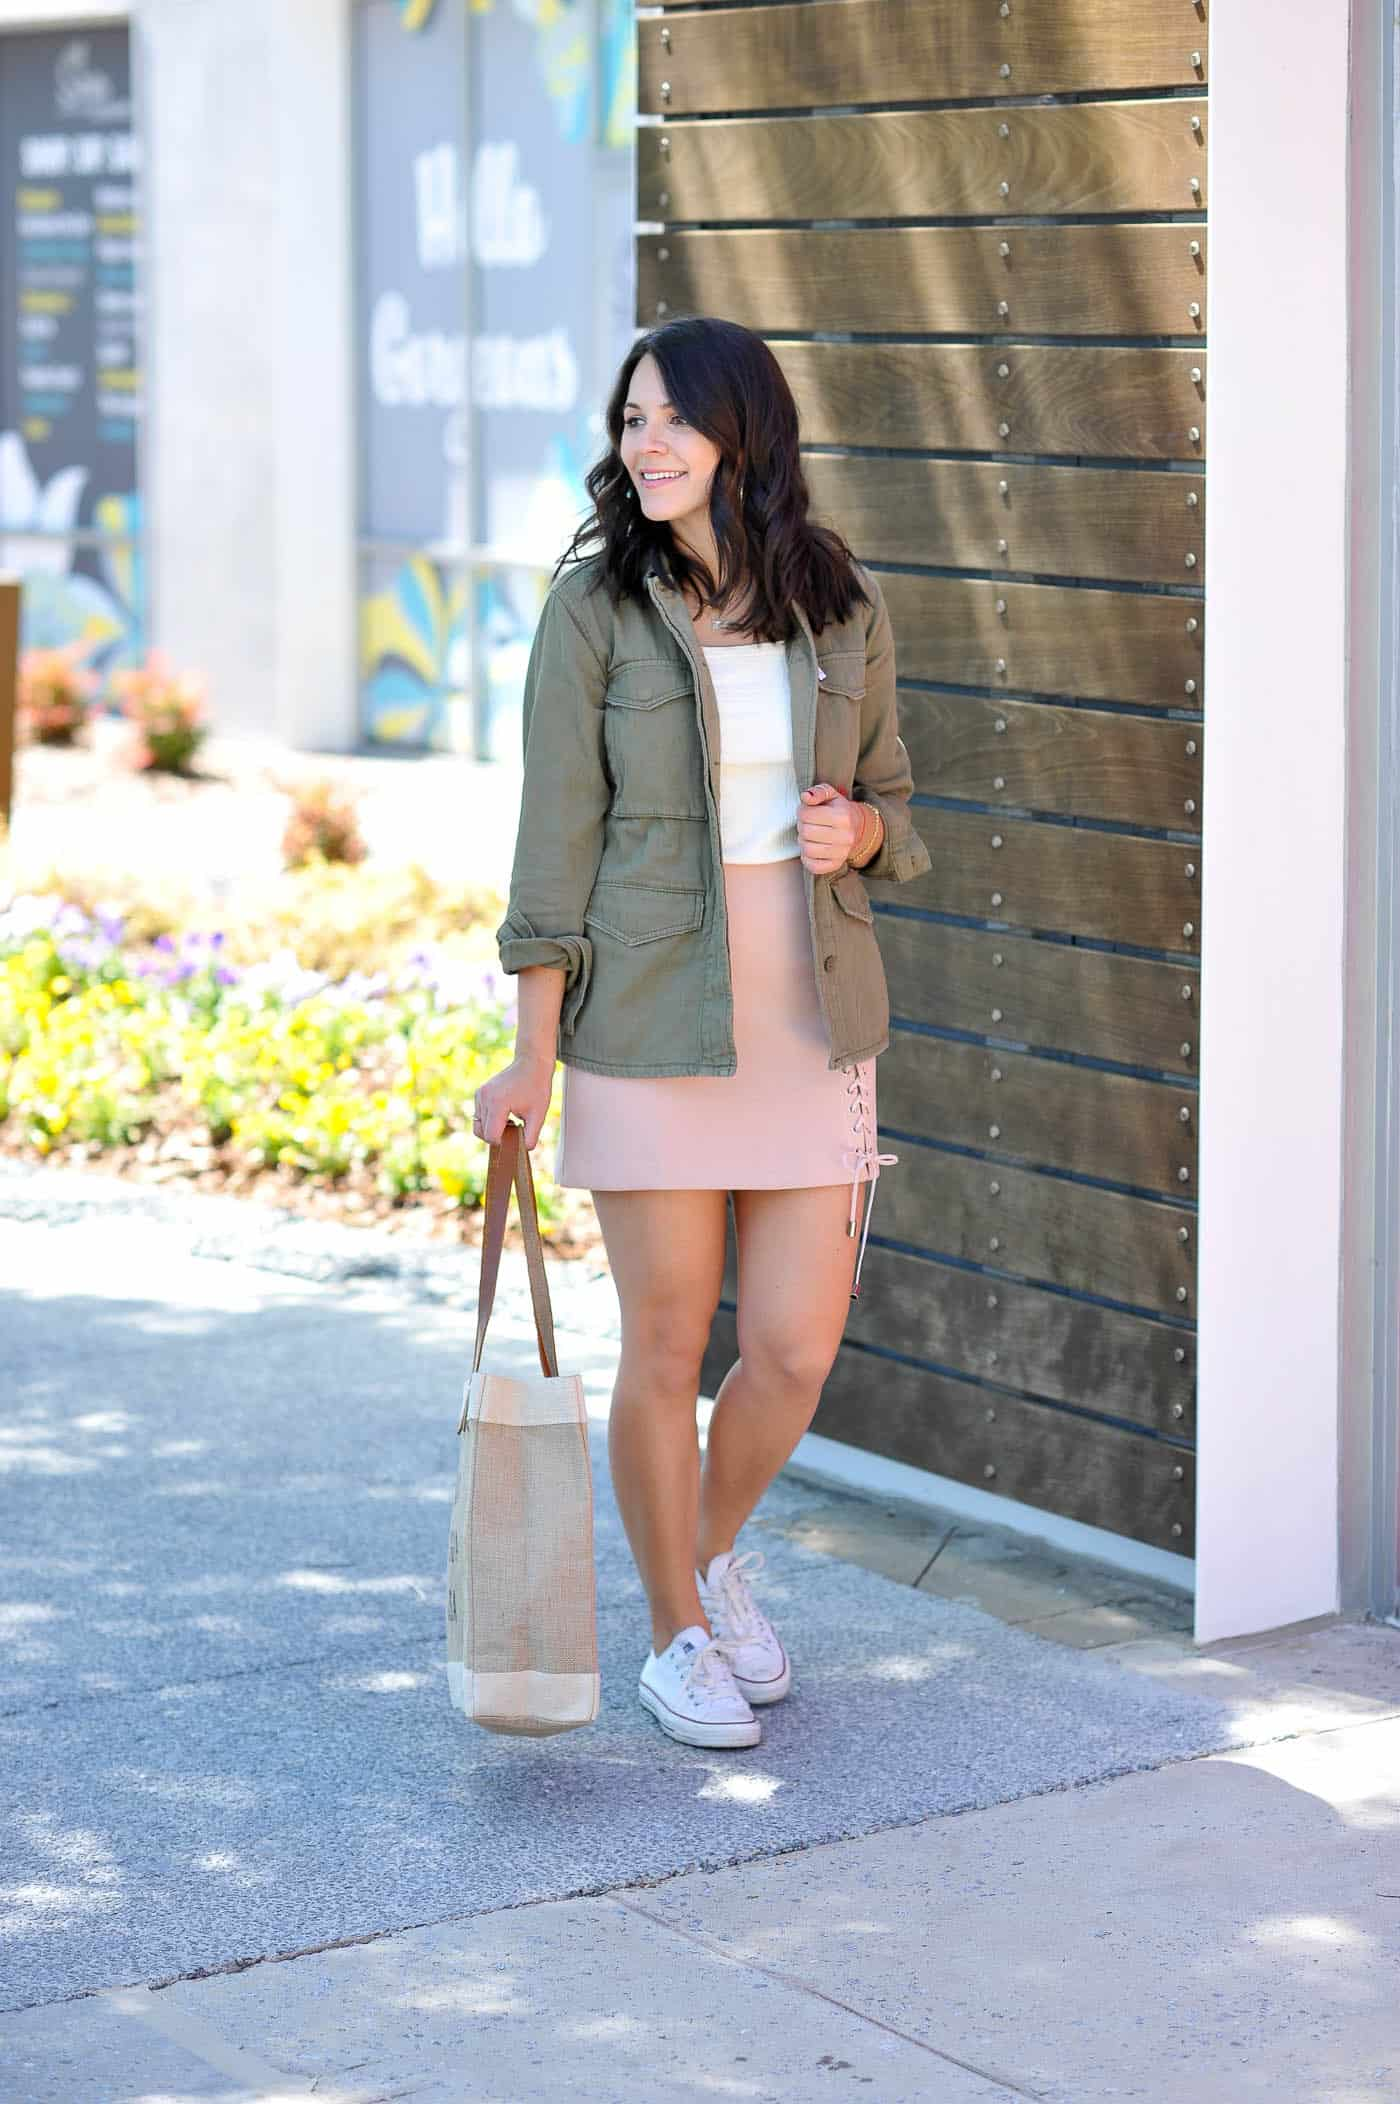 lace up blush mini skirt, casual summer outfit ideas - My Style Vita @mystylevita